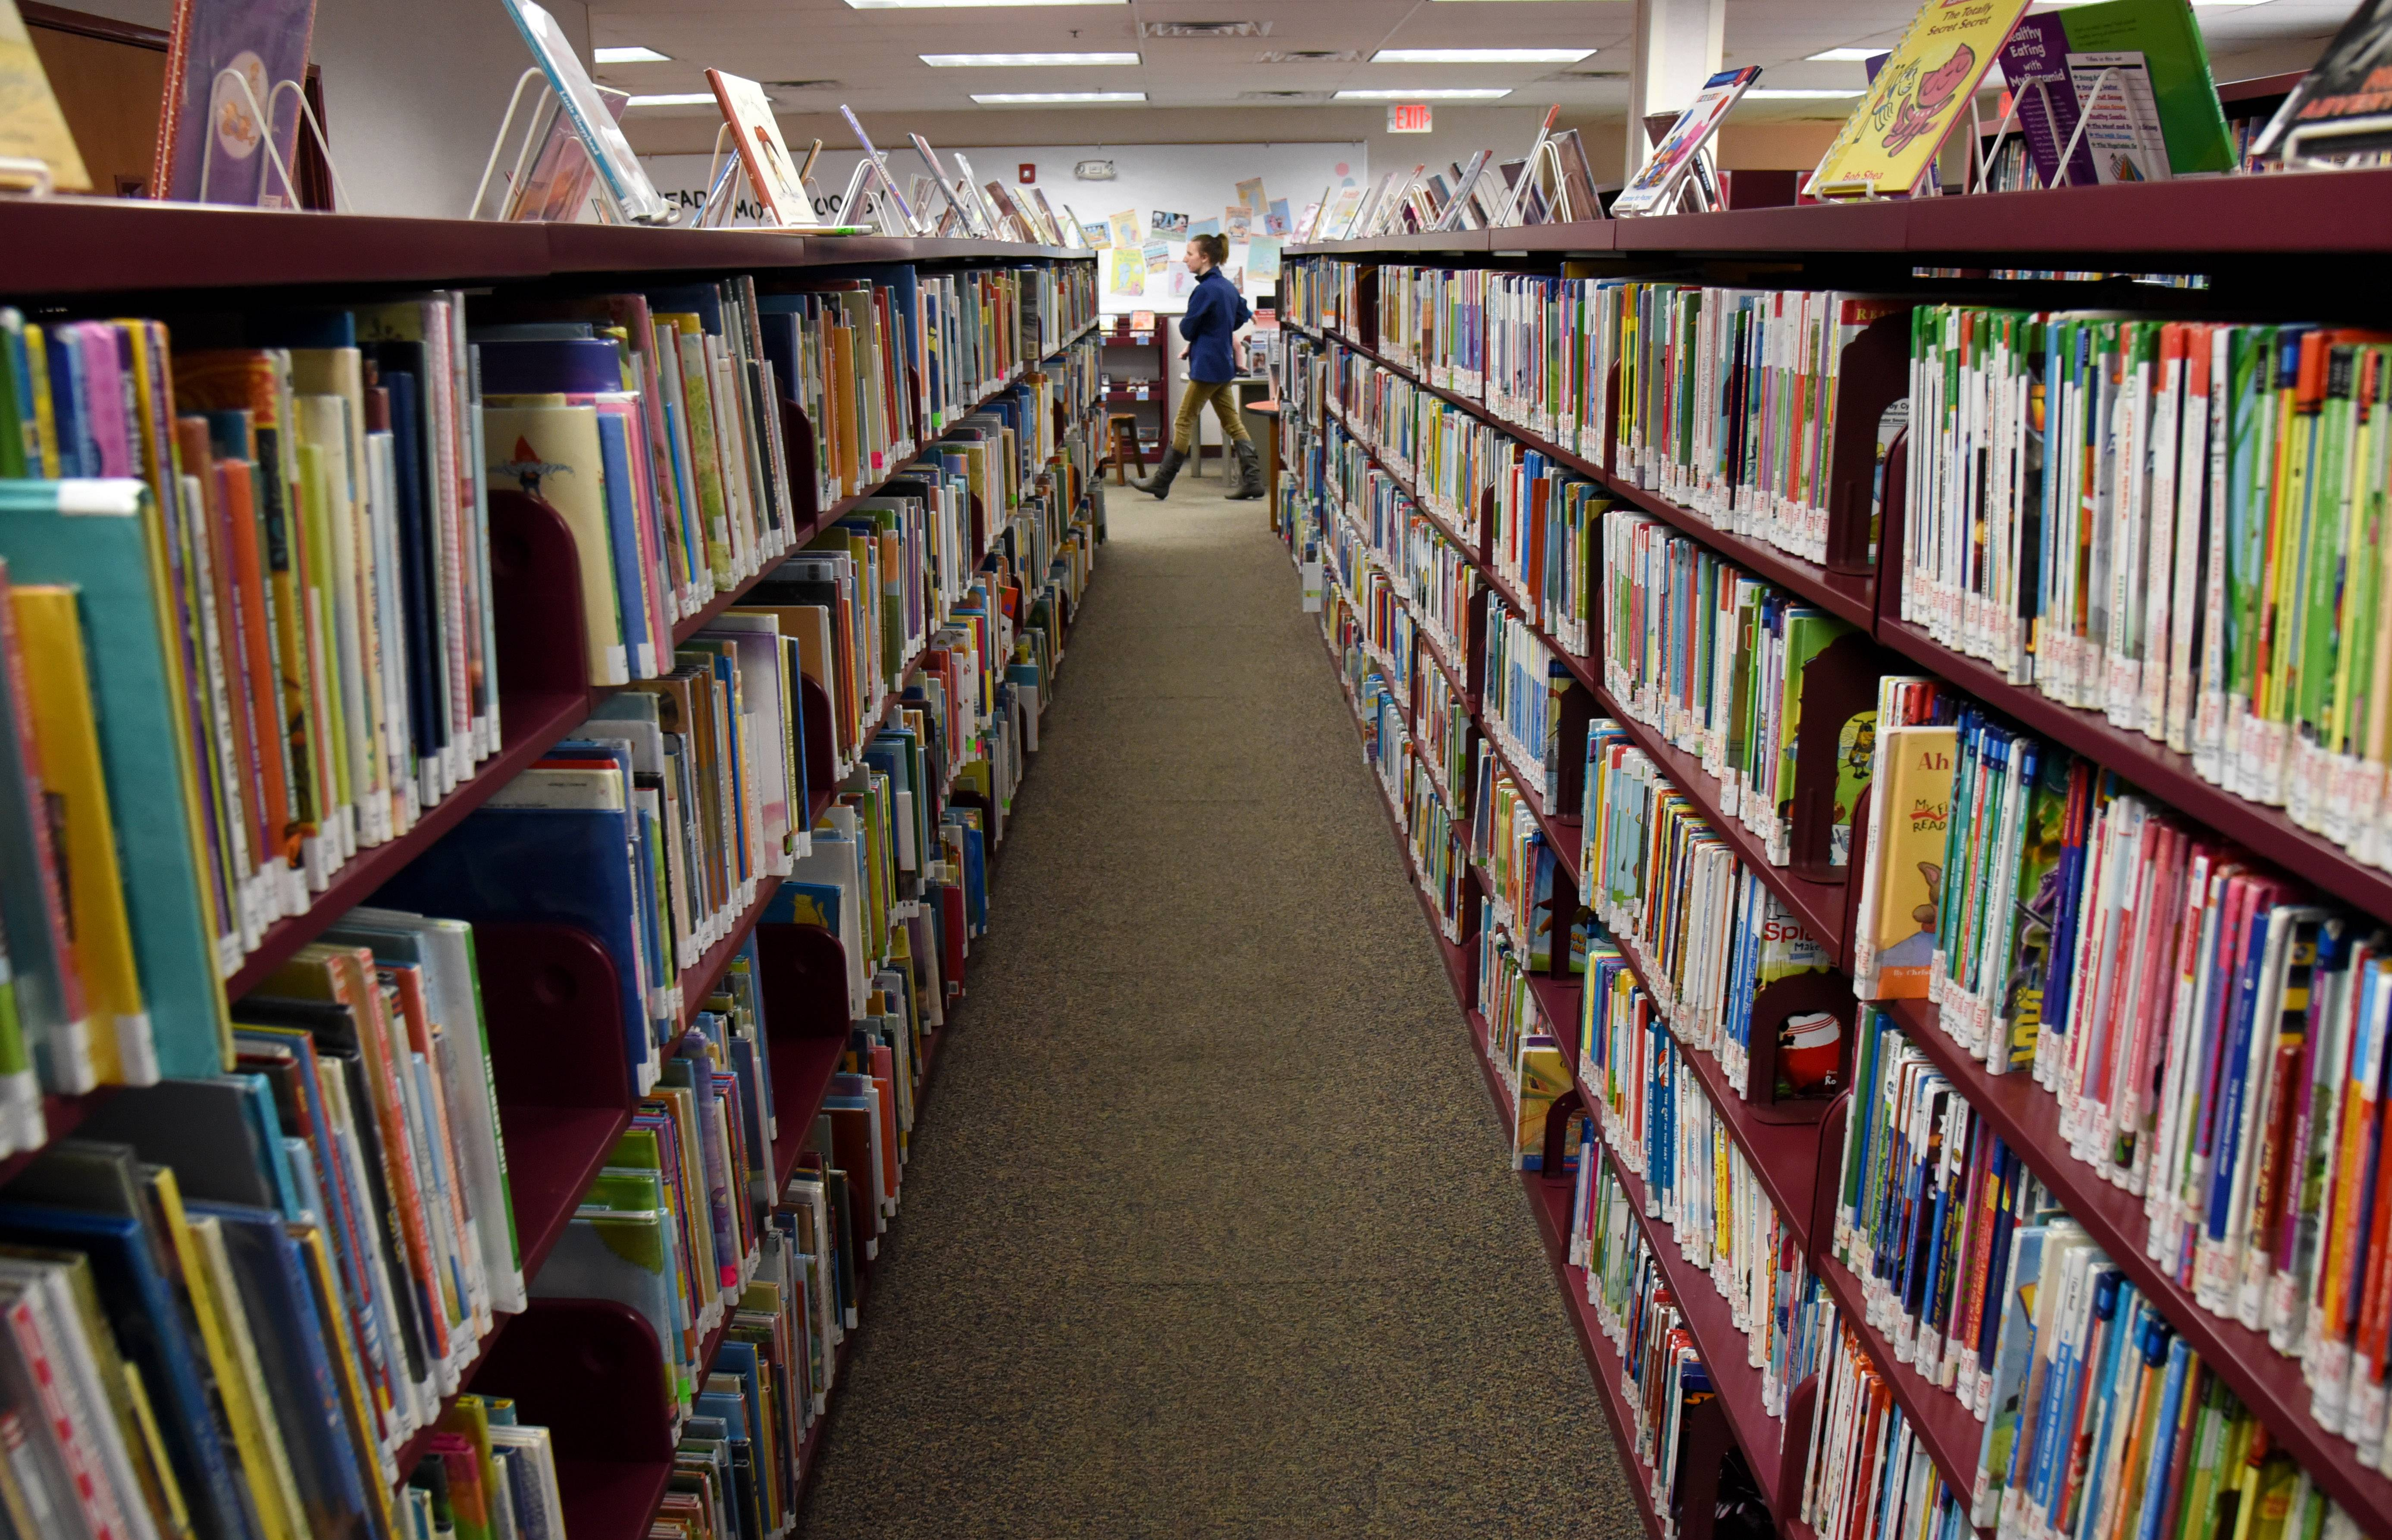 Huntley Area Public Library District officials are considering a future expansion due to a space crunch. The library, which opened in 1999, has a crowded children's area, which can accommodate only 12 people at a time in a trailer.